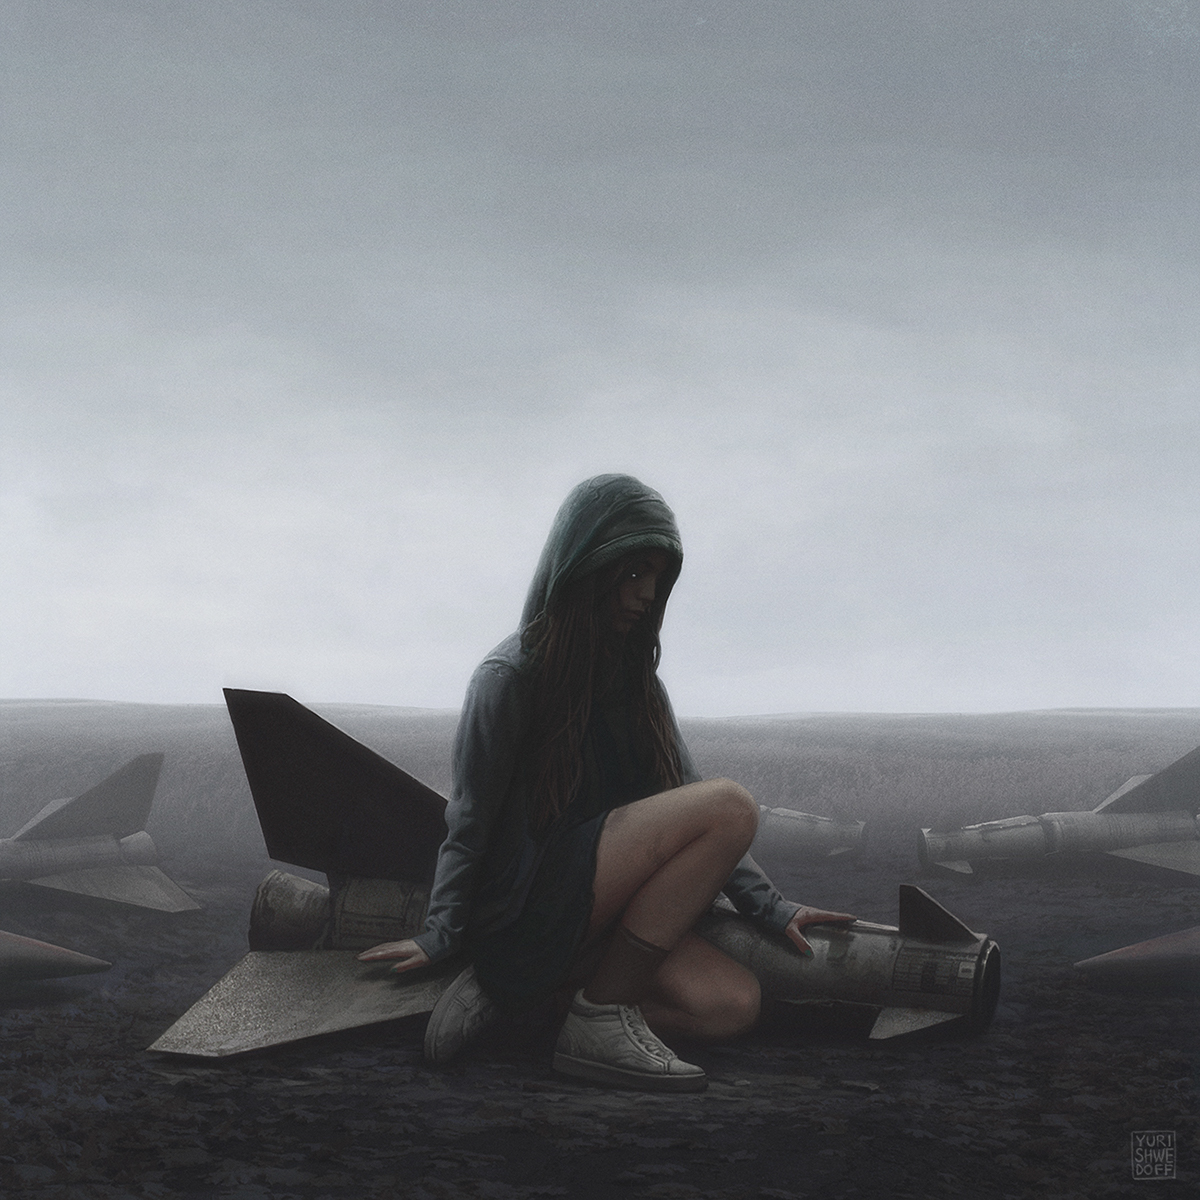 Eerie Illustrations of an Apocalyptical World